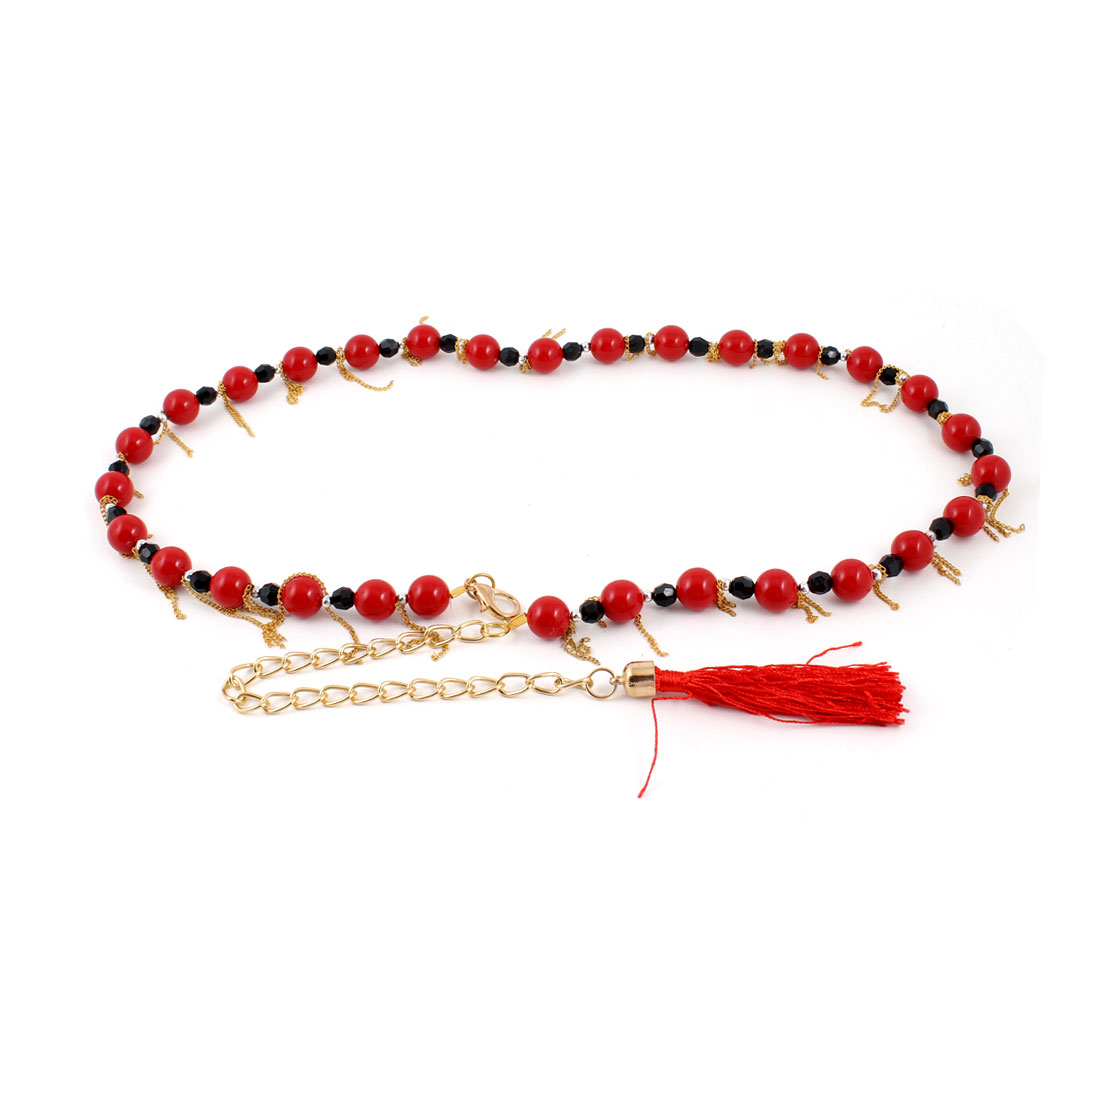 Woman Lobster Clasp Plastic Beads Decor Adjustable Chain Waist Belt Band Red